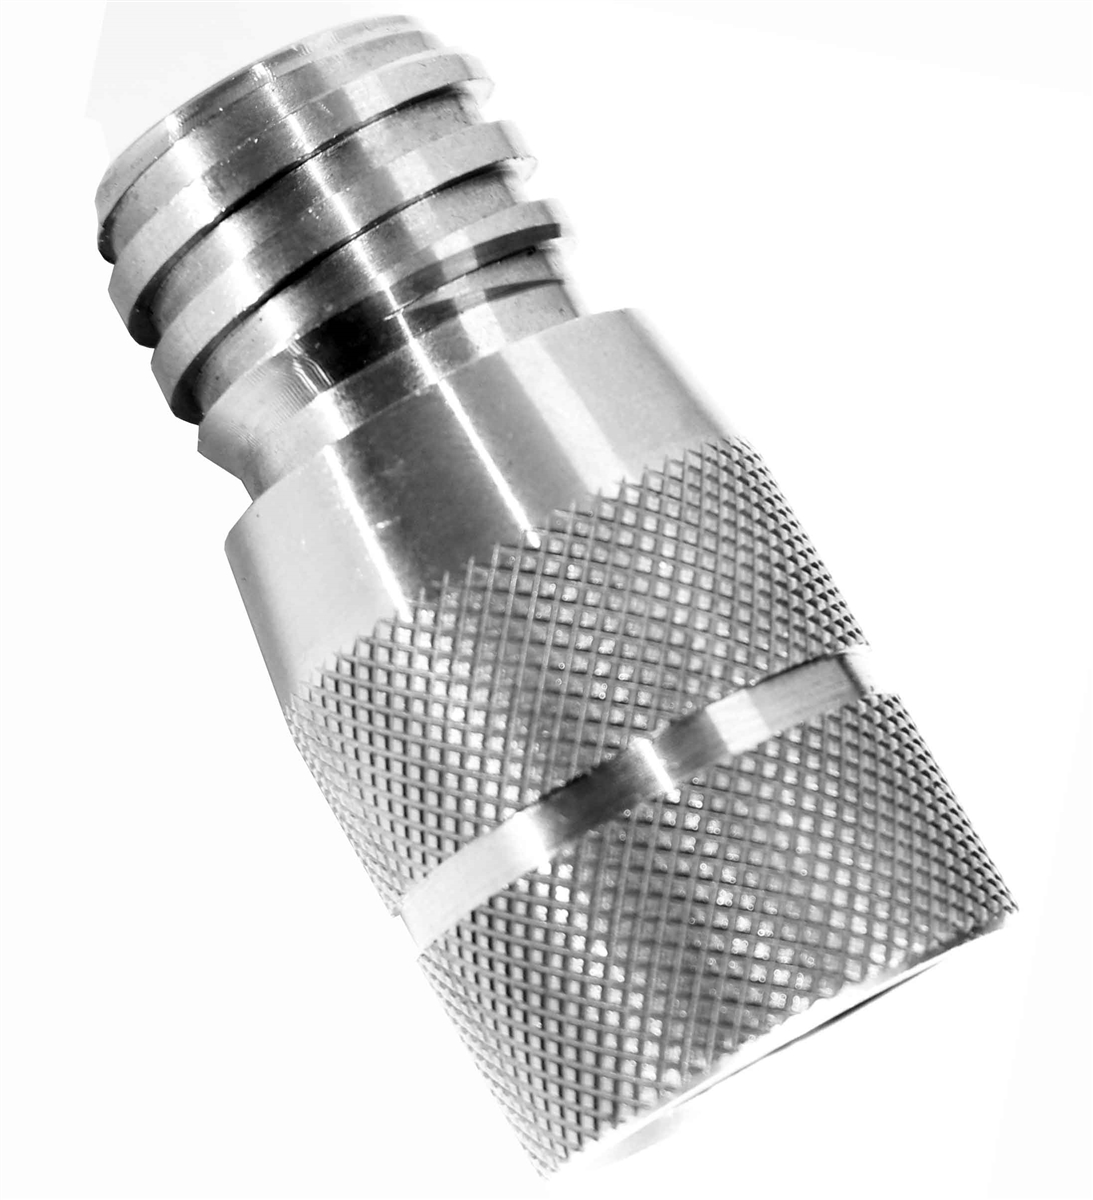 Trinity Stainless Steel Co2 Tank Adapter for Soda Machines Stainless Steel Adapter for Paintball Co2 Tanks to Be USE on home Soda Machines.